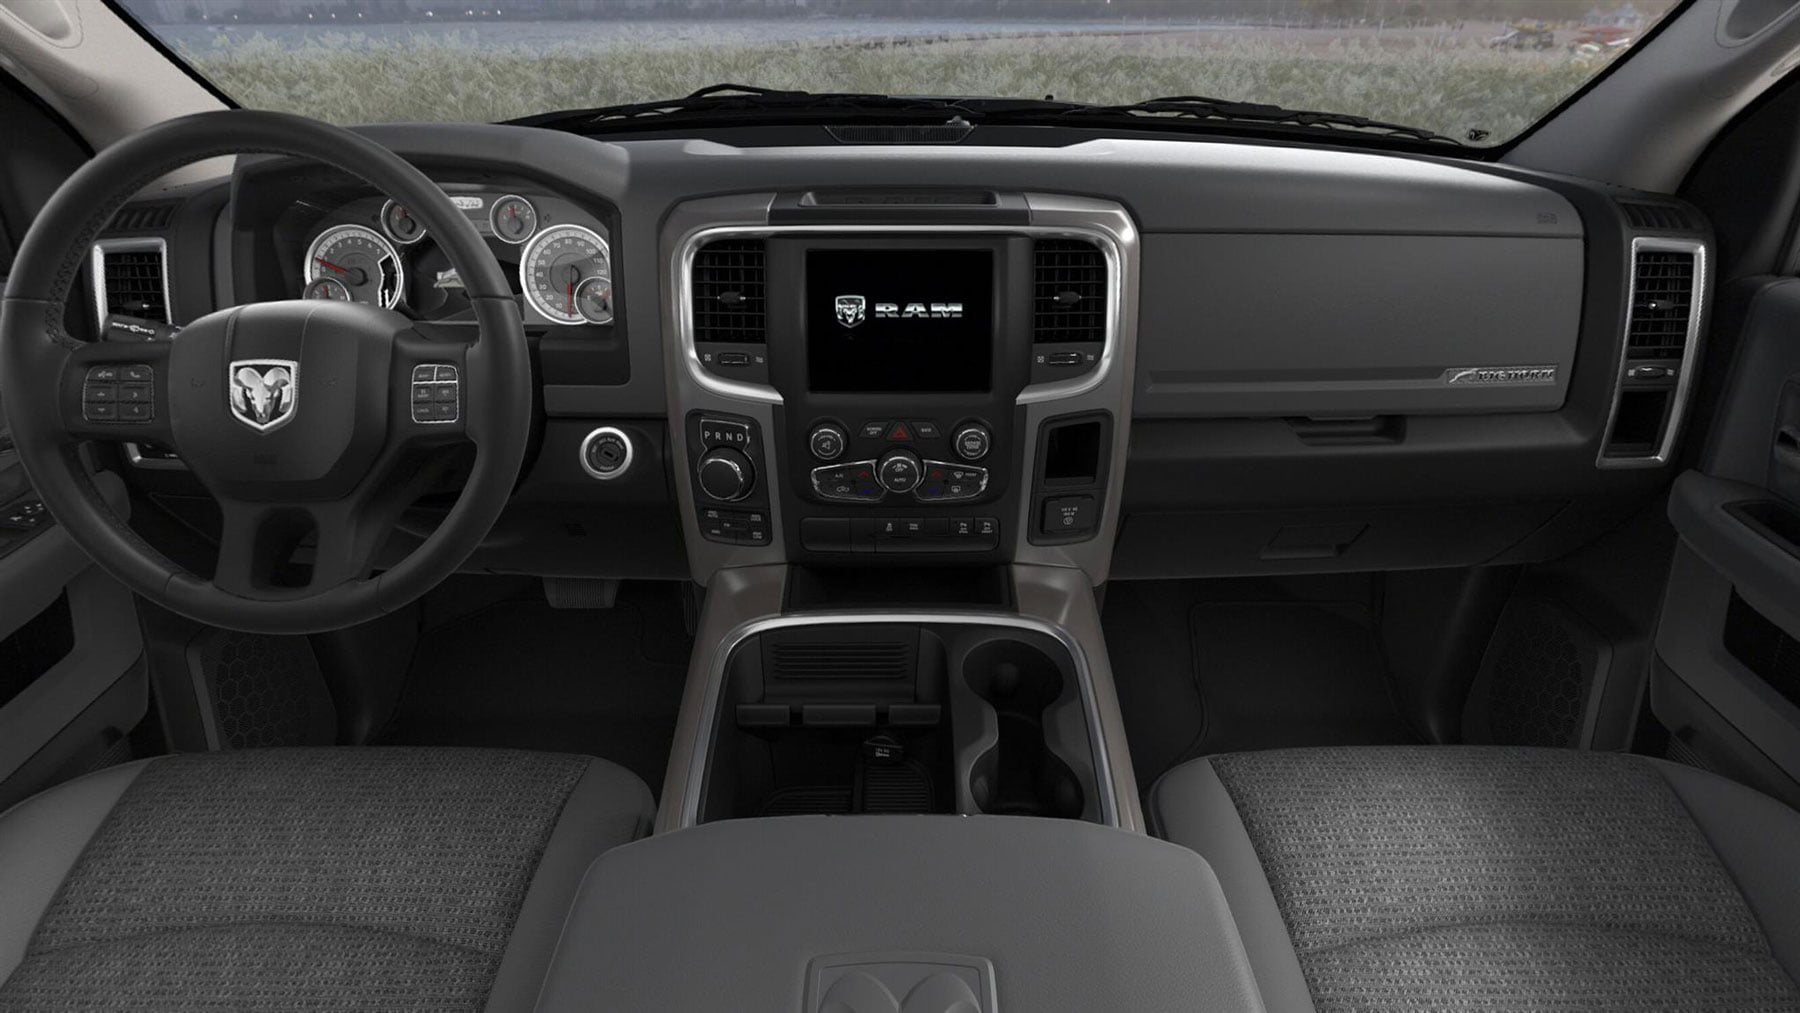 RAM 1500 SLT 2018 interior cloth bucket seats